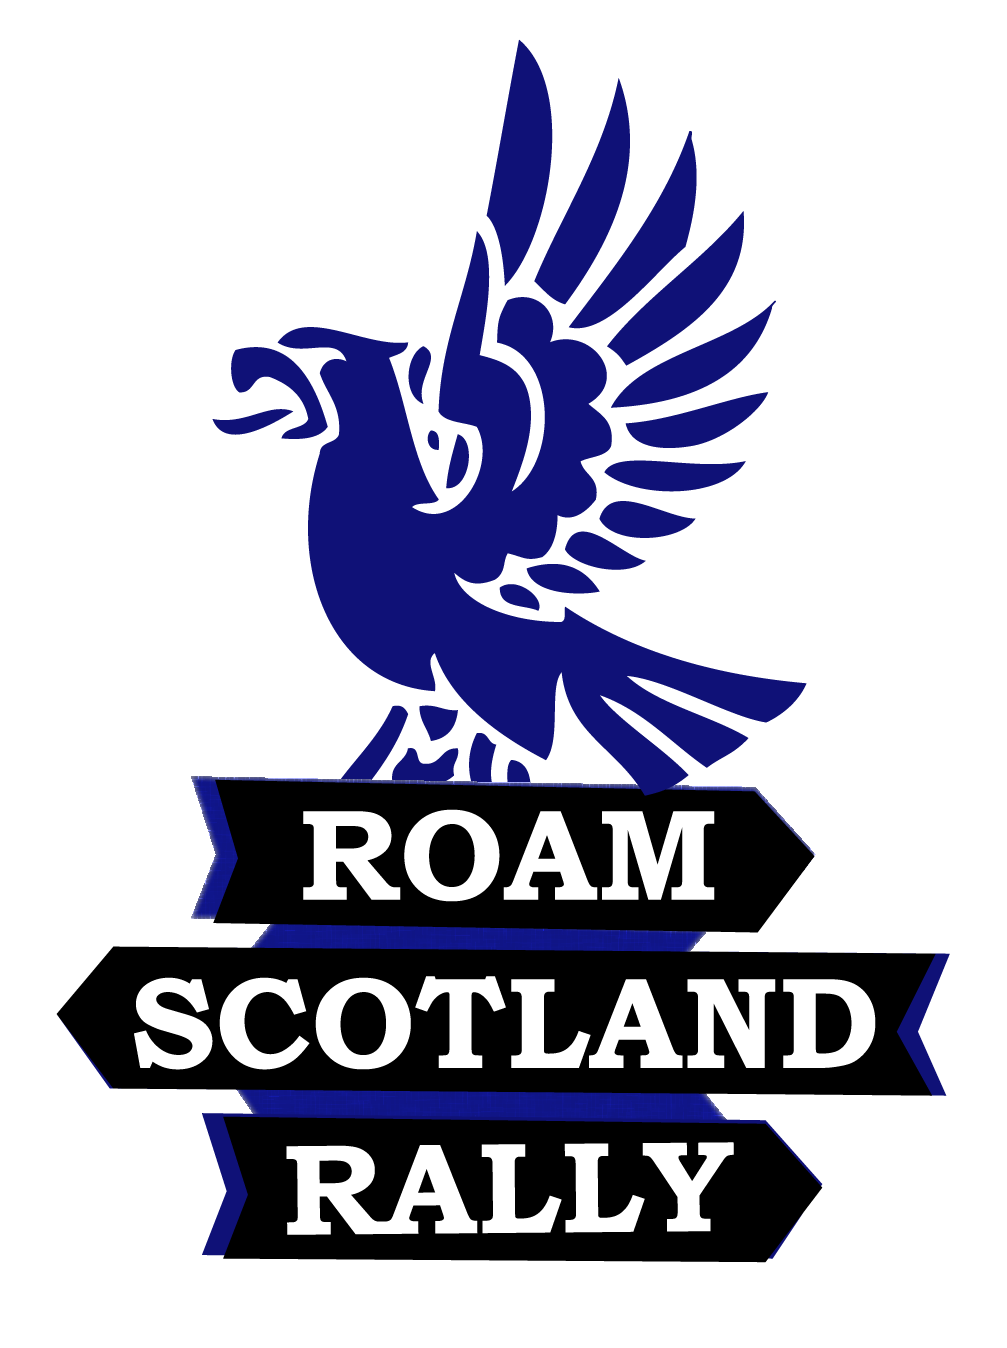 Roam Scotland Rally